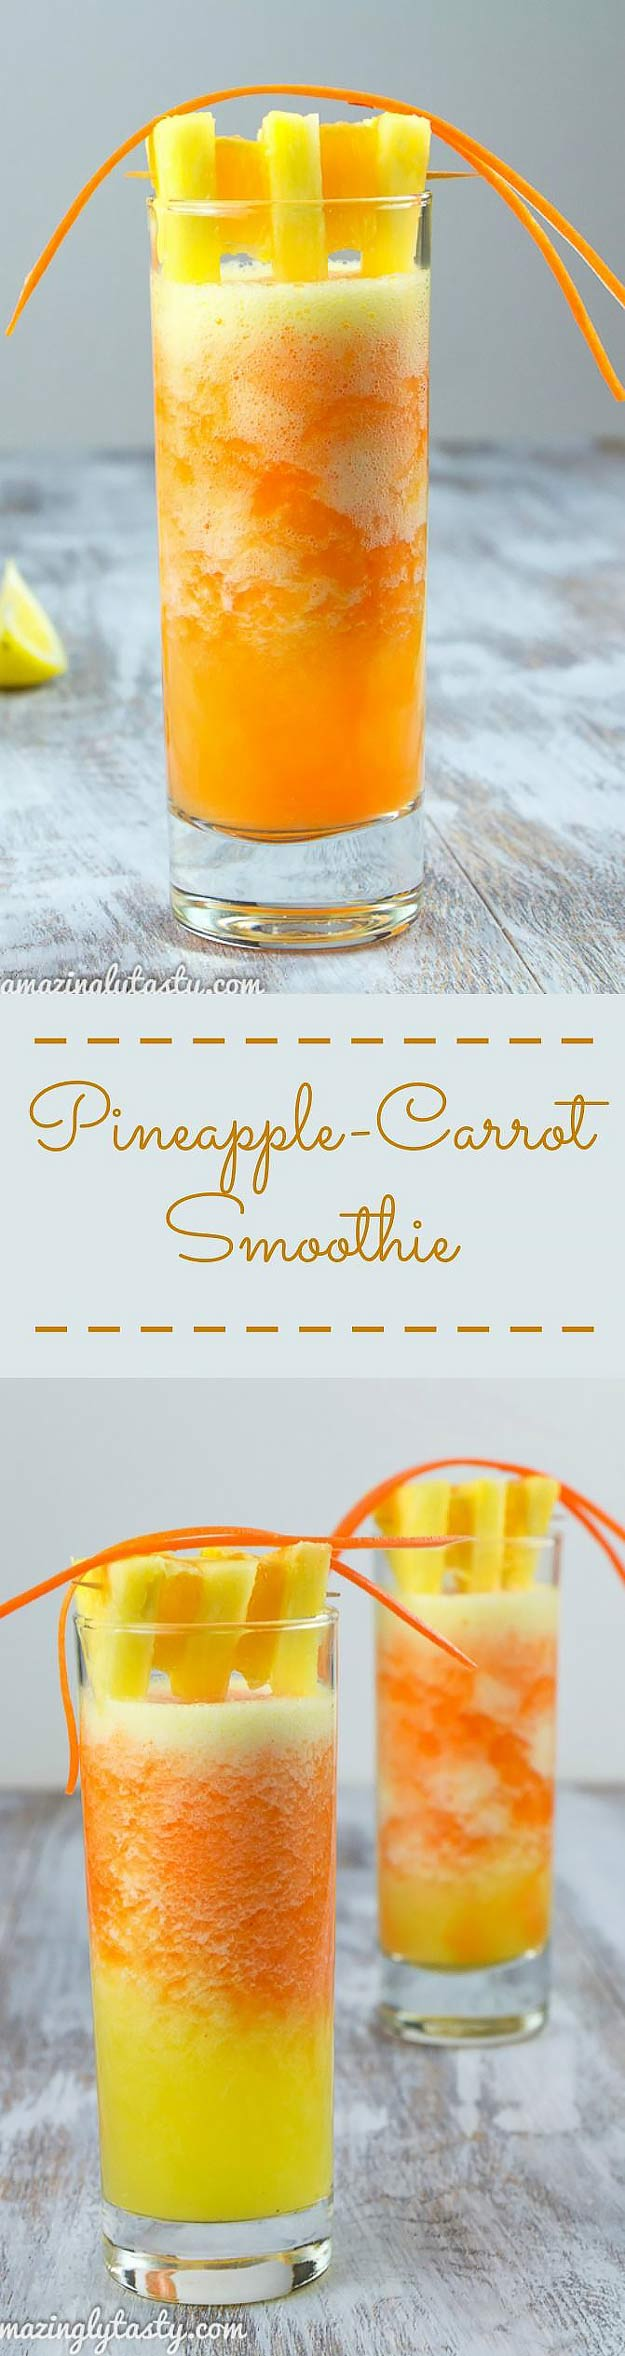 Pineapple-Carrot-Orange-healthy-Smoothie-recipe